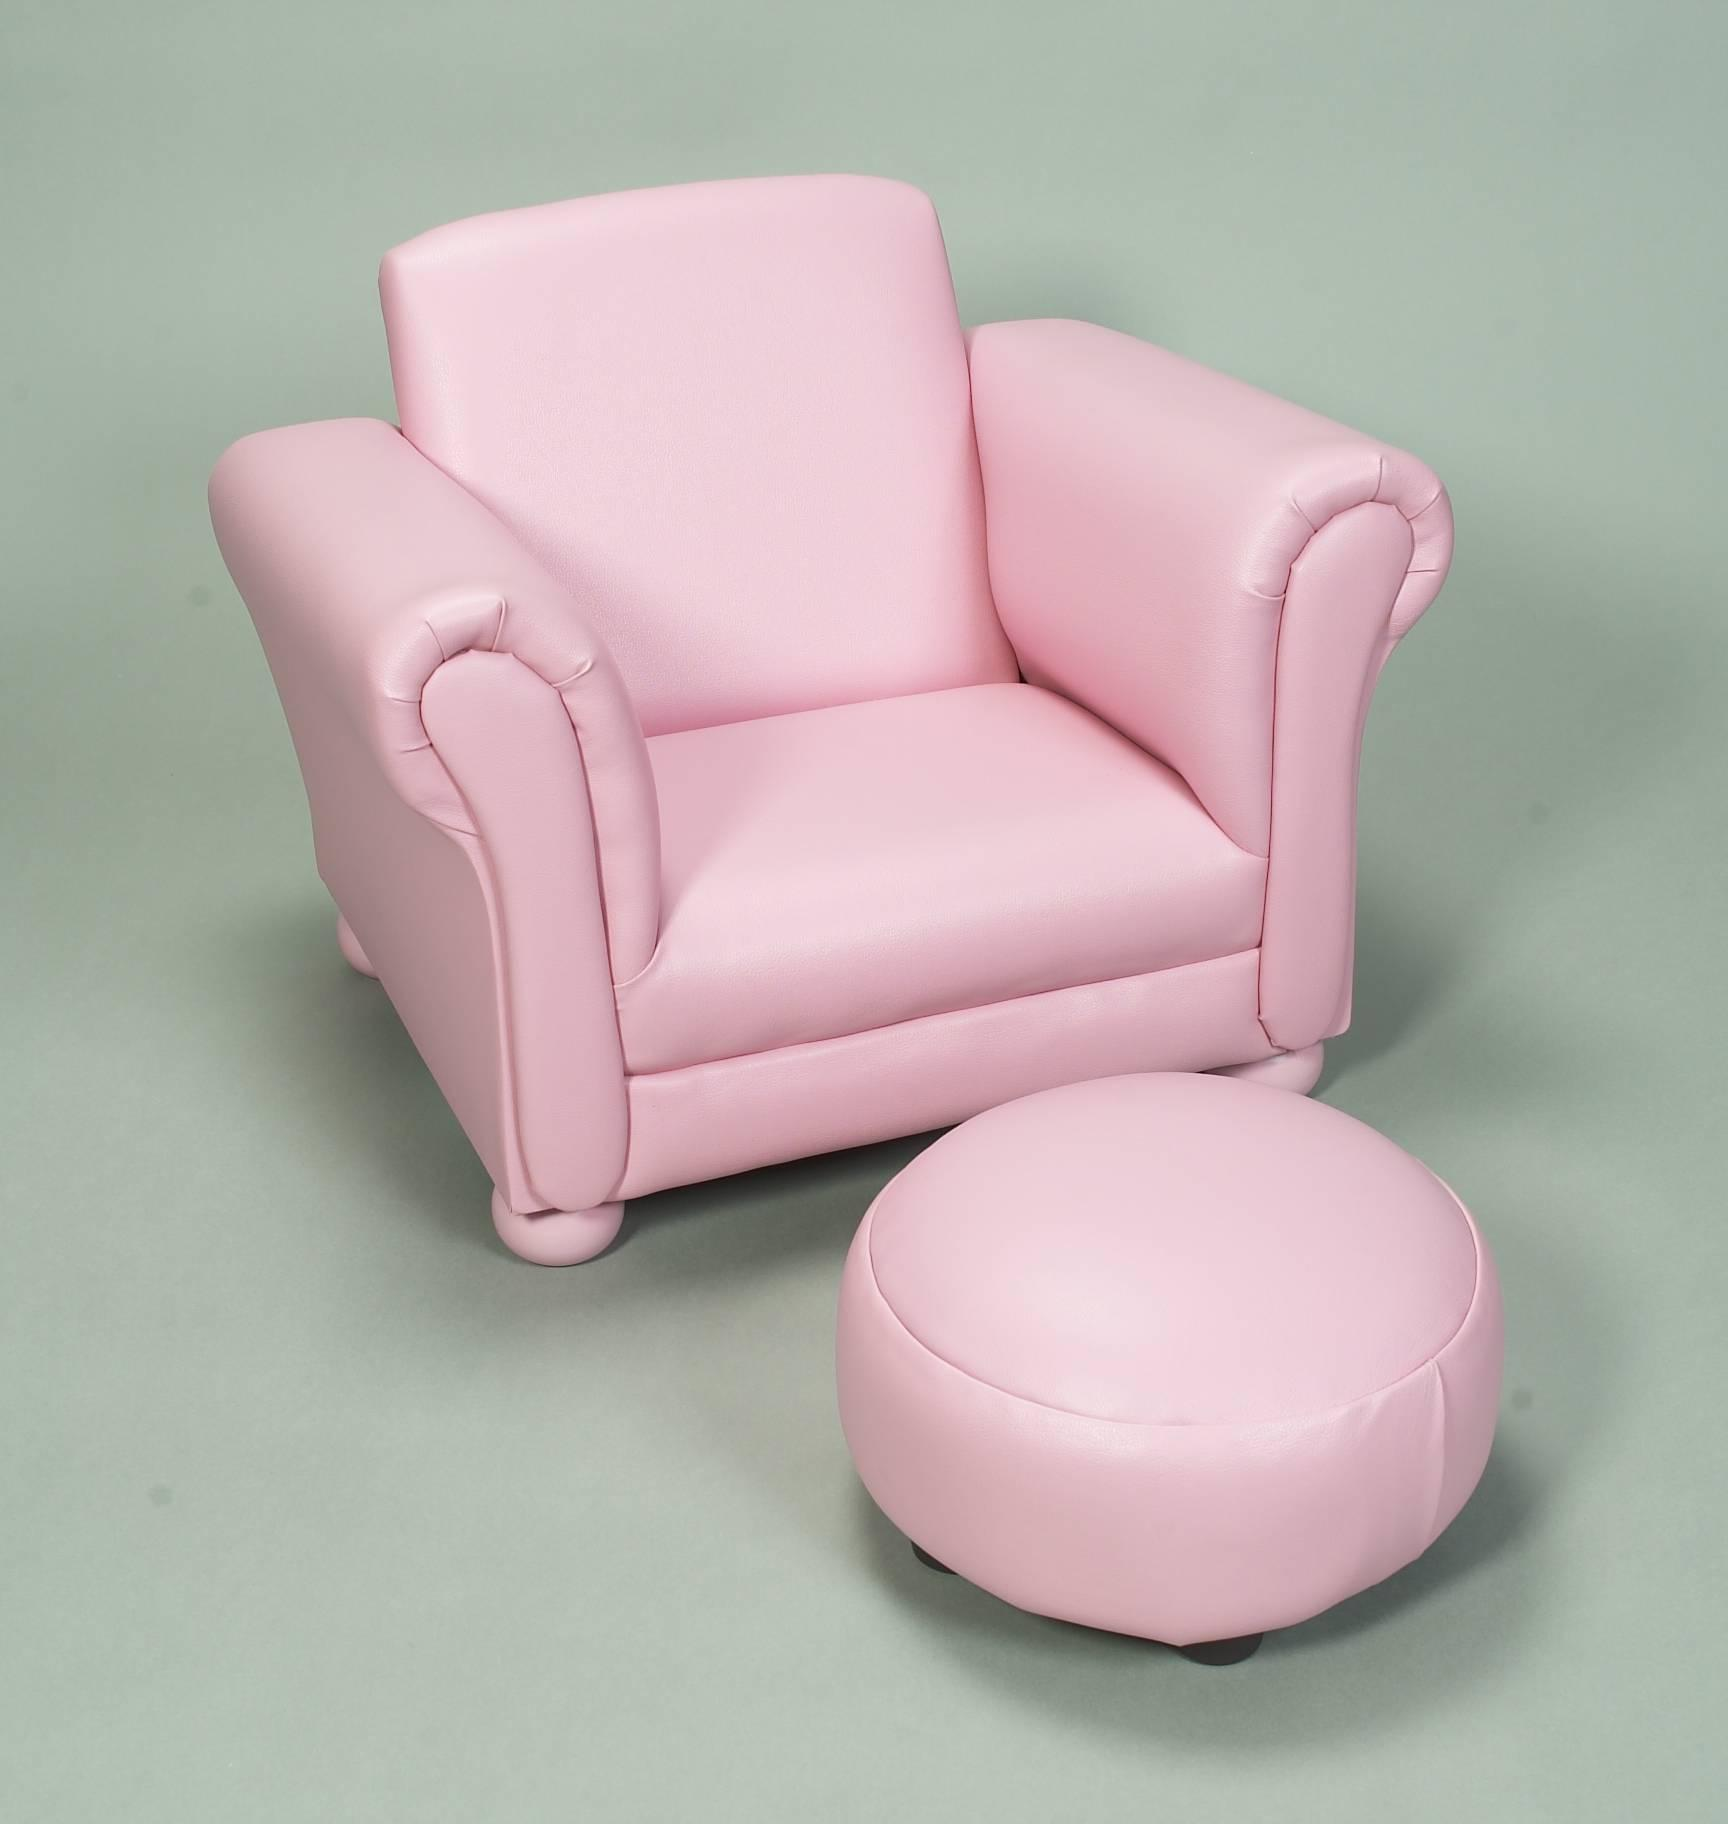 Gift Mark Child's Upholstered Chair w/ Ottoman-Color:Pink